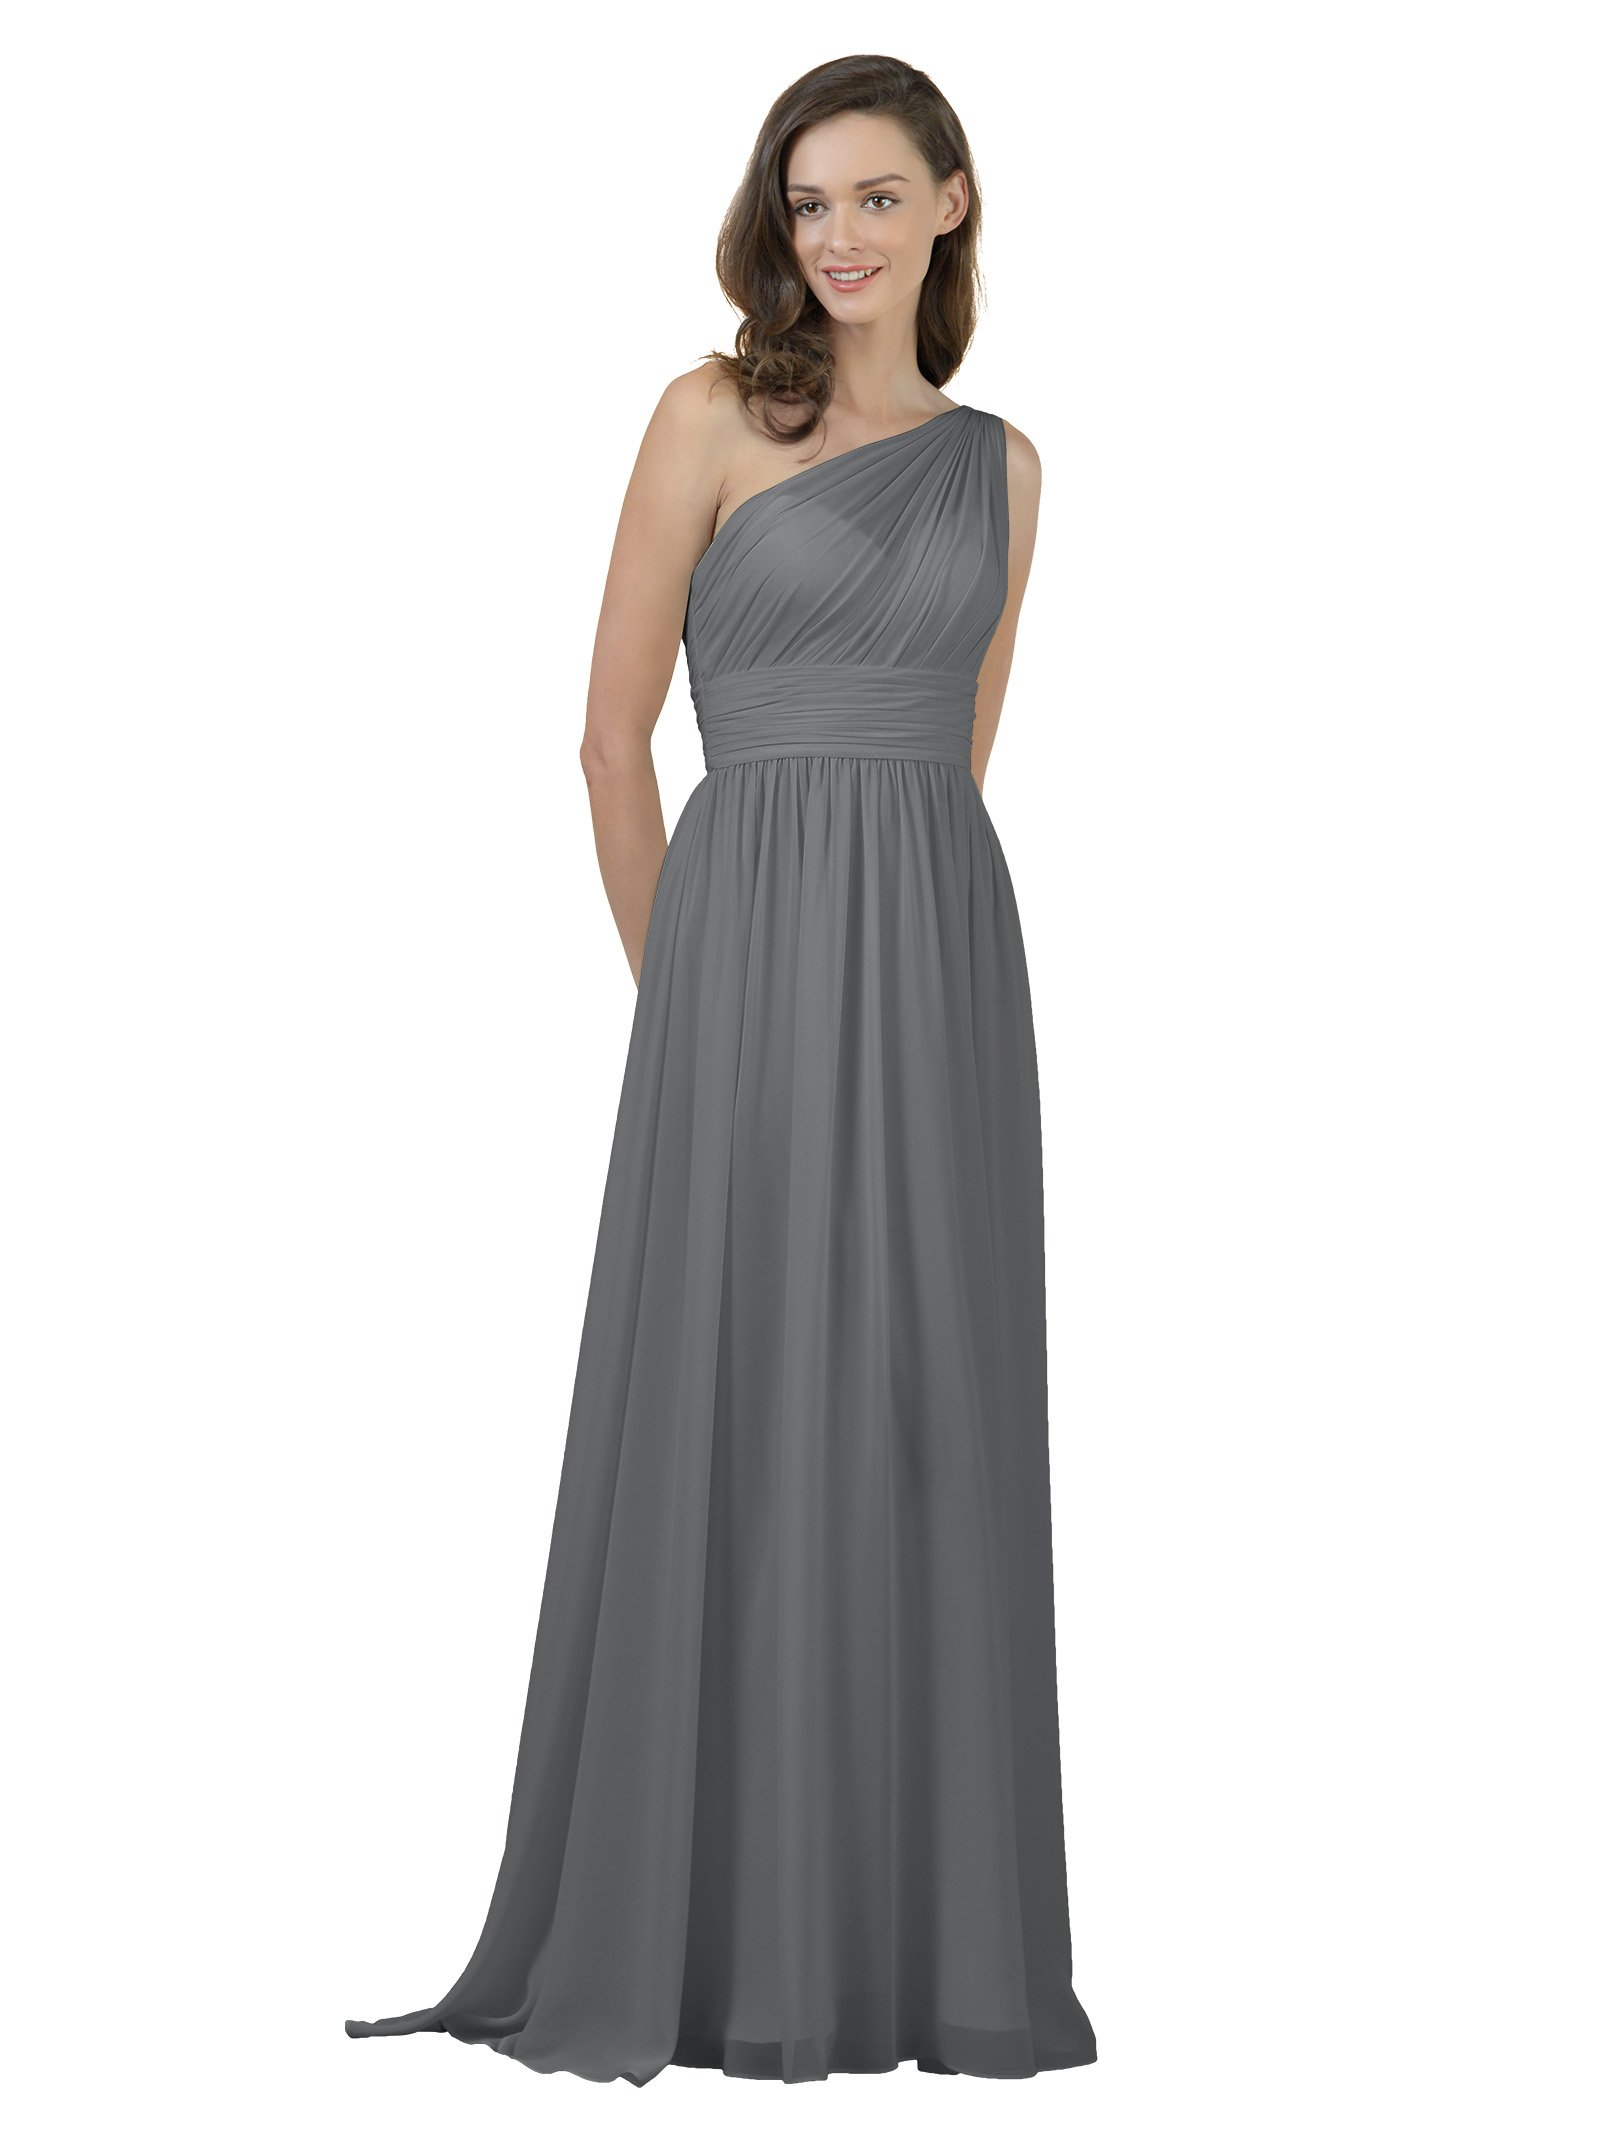 Alicepub One Shoulder Bridesmaid Dress for Women Long Evening Party Gown Maxi